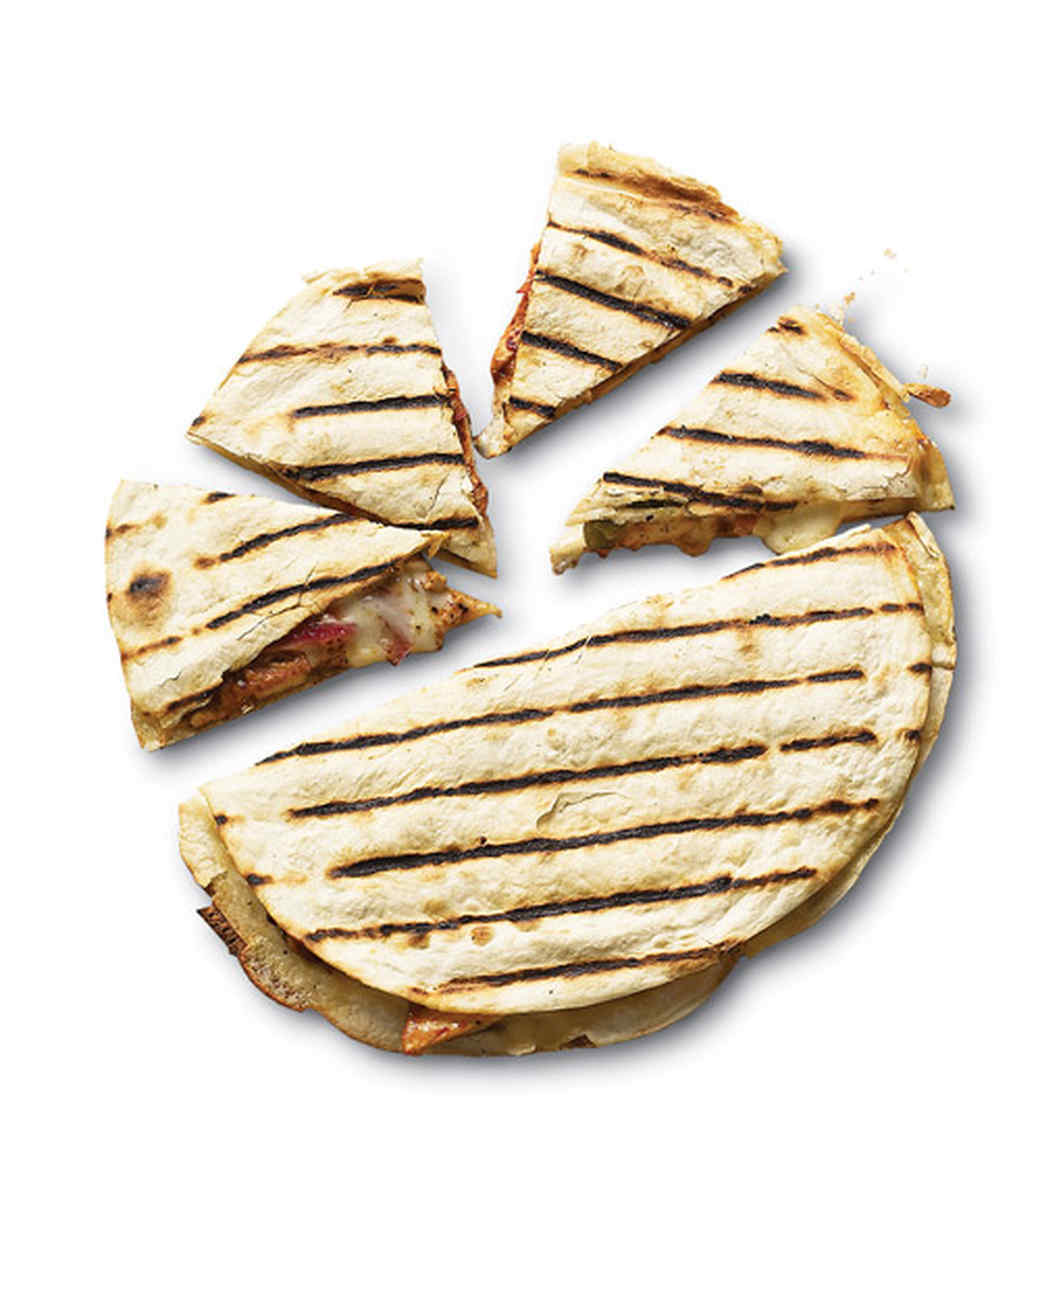 Adobo-Marinated Chicken Quesadillas